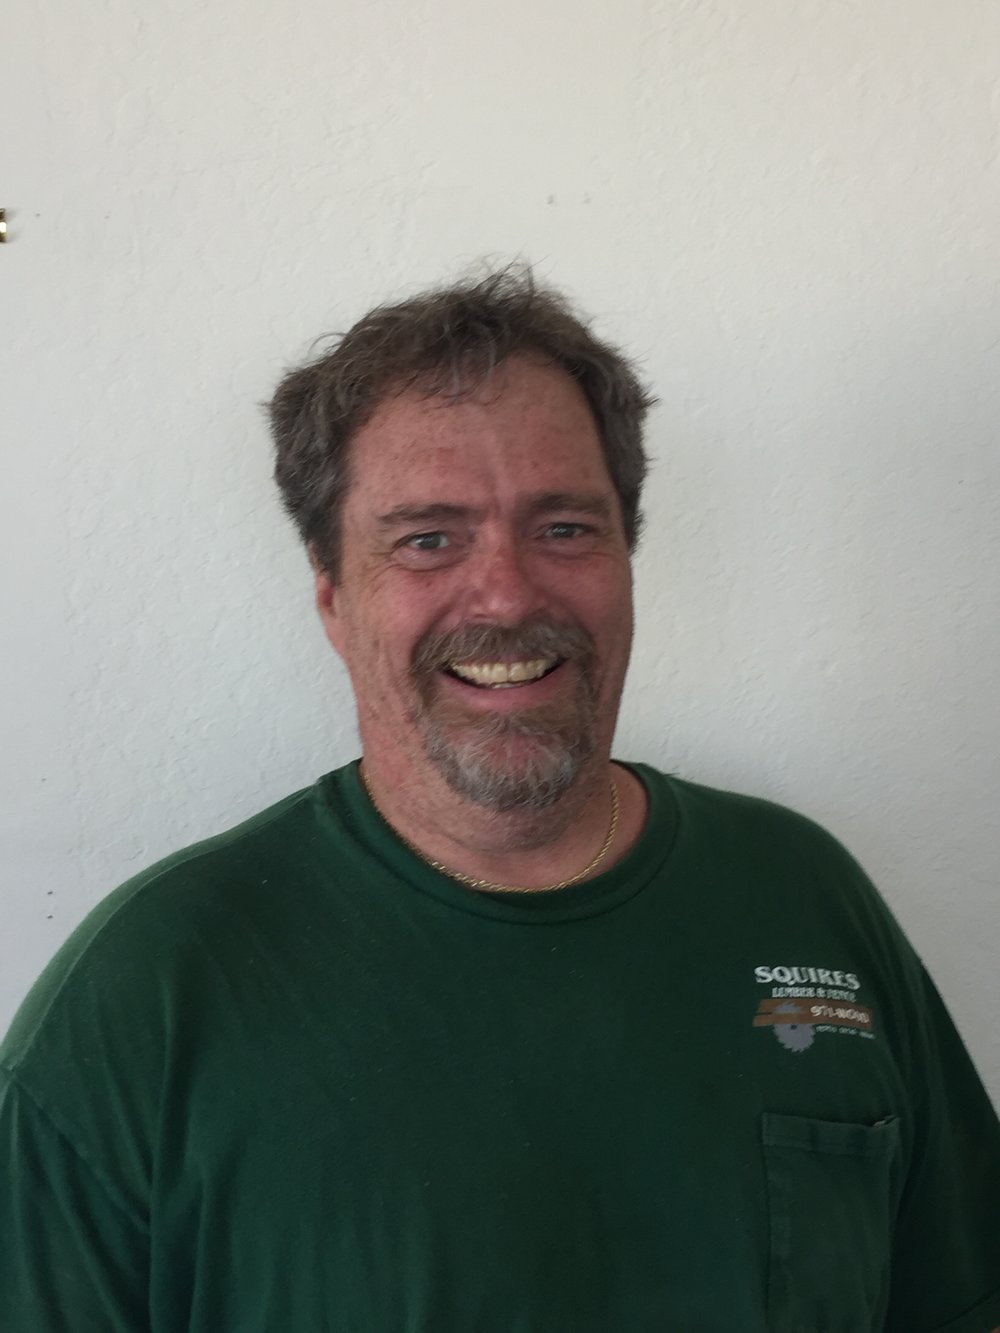 Bill Wyatt, Project Manager    Bill Wyatt joined Schiller Construction  in 2001 after working as a project manager for a local fencing and deck company. Today, he acts as a Senior Project Manager.   Favorite Project: Solar Panel House